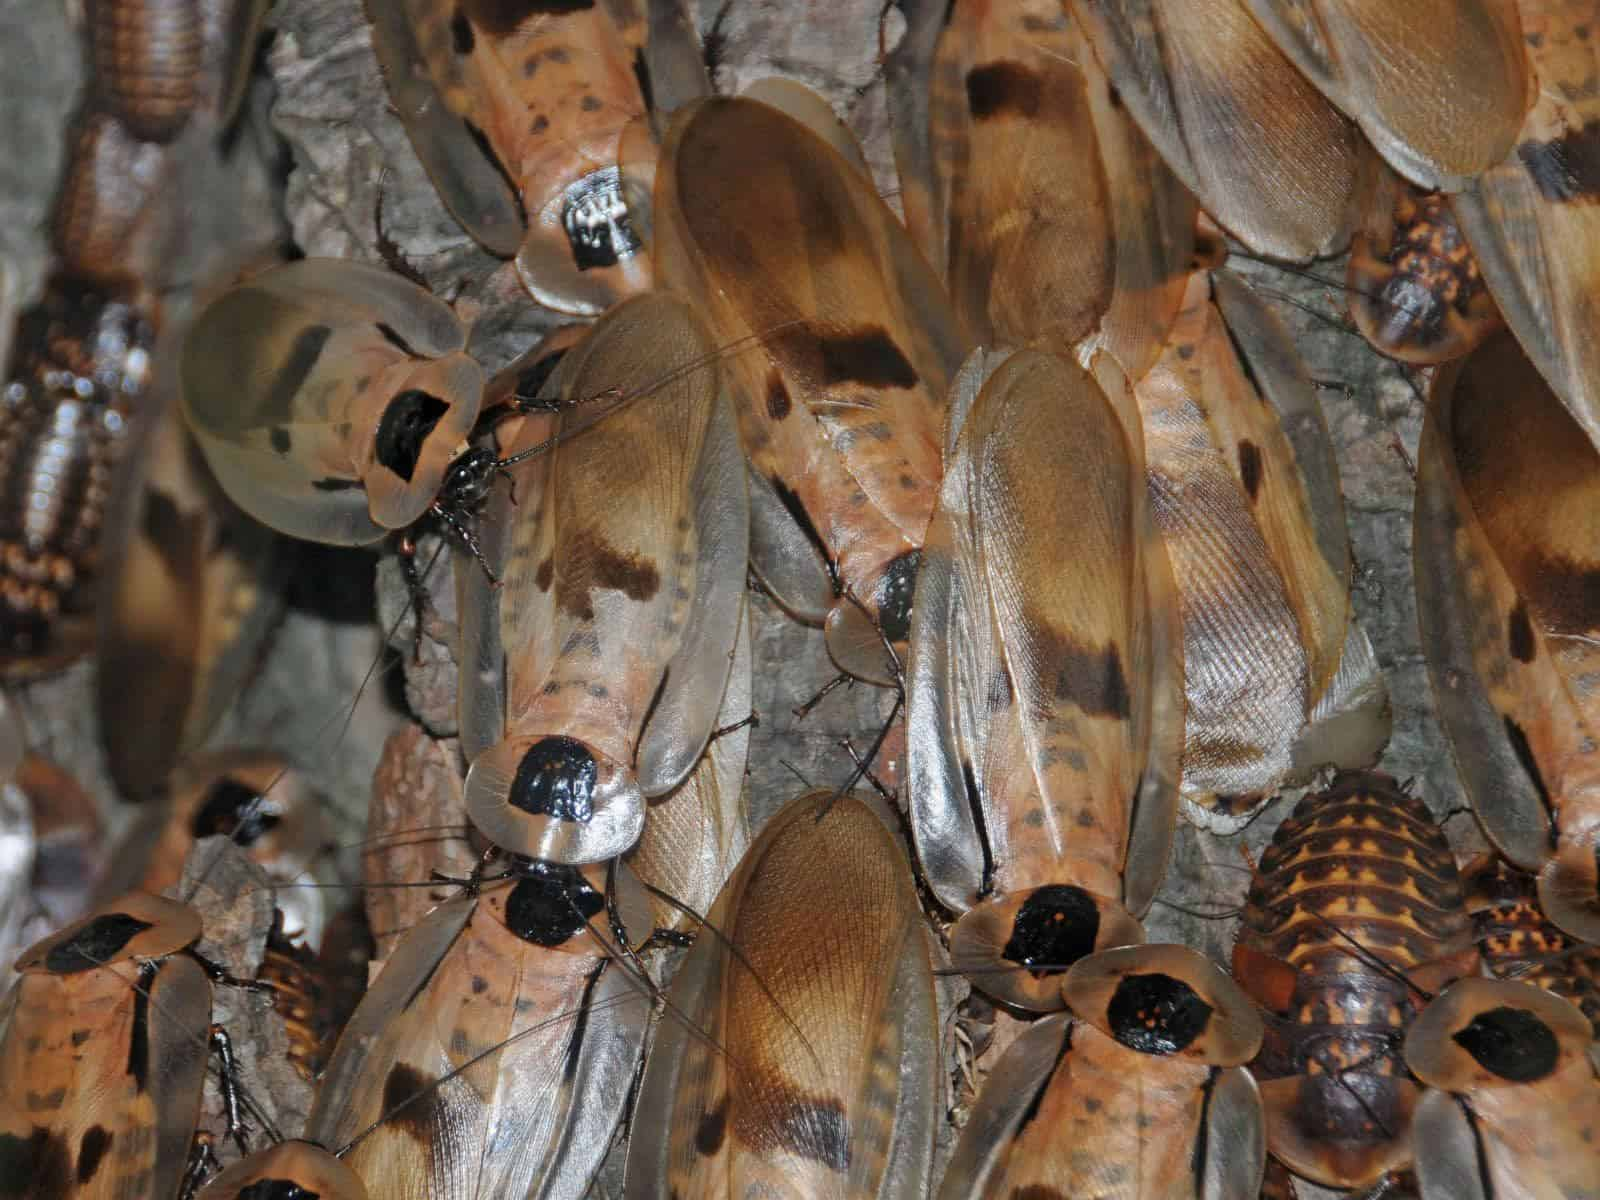 Baby cockroaches